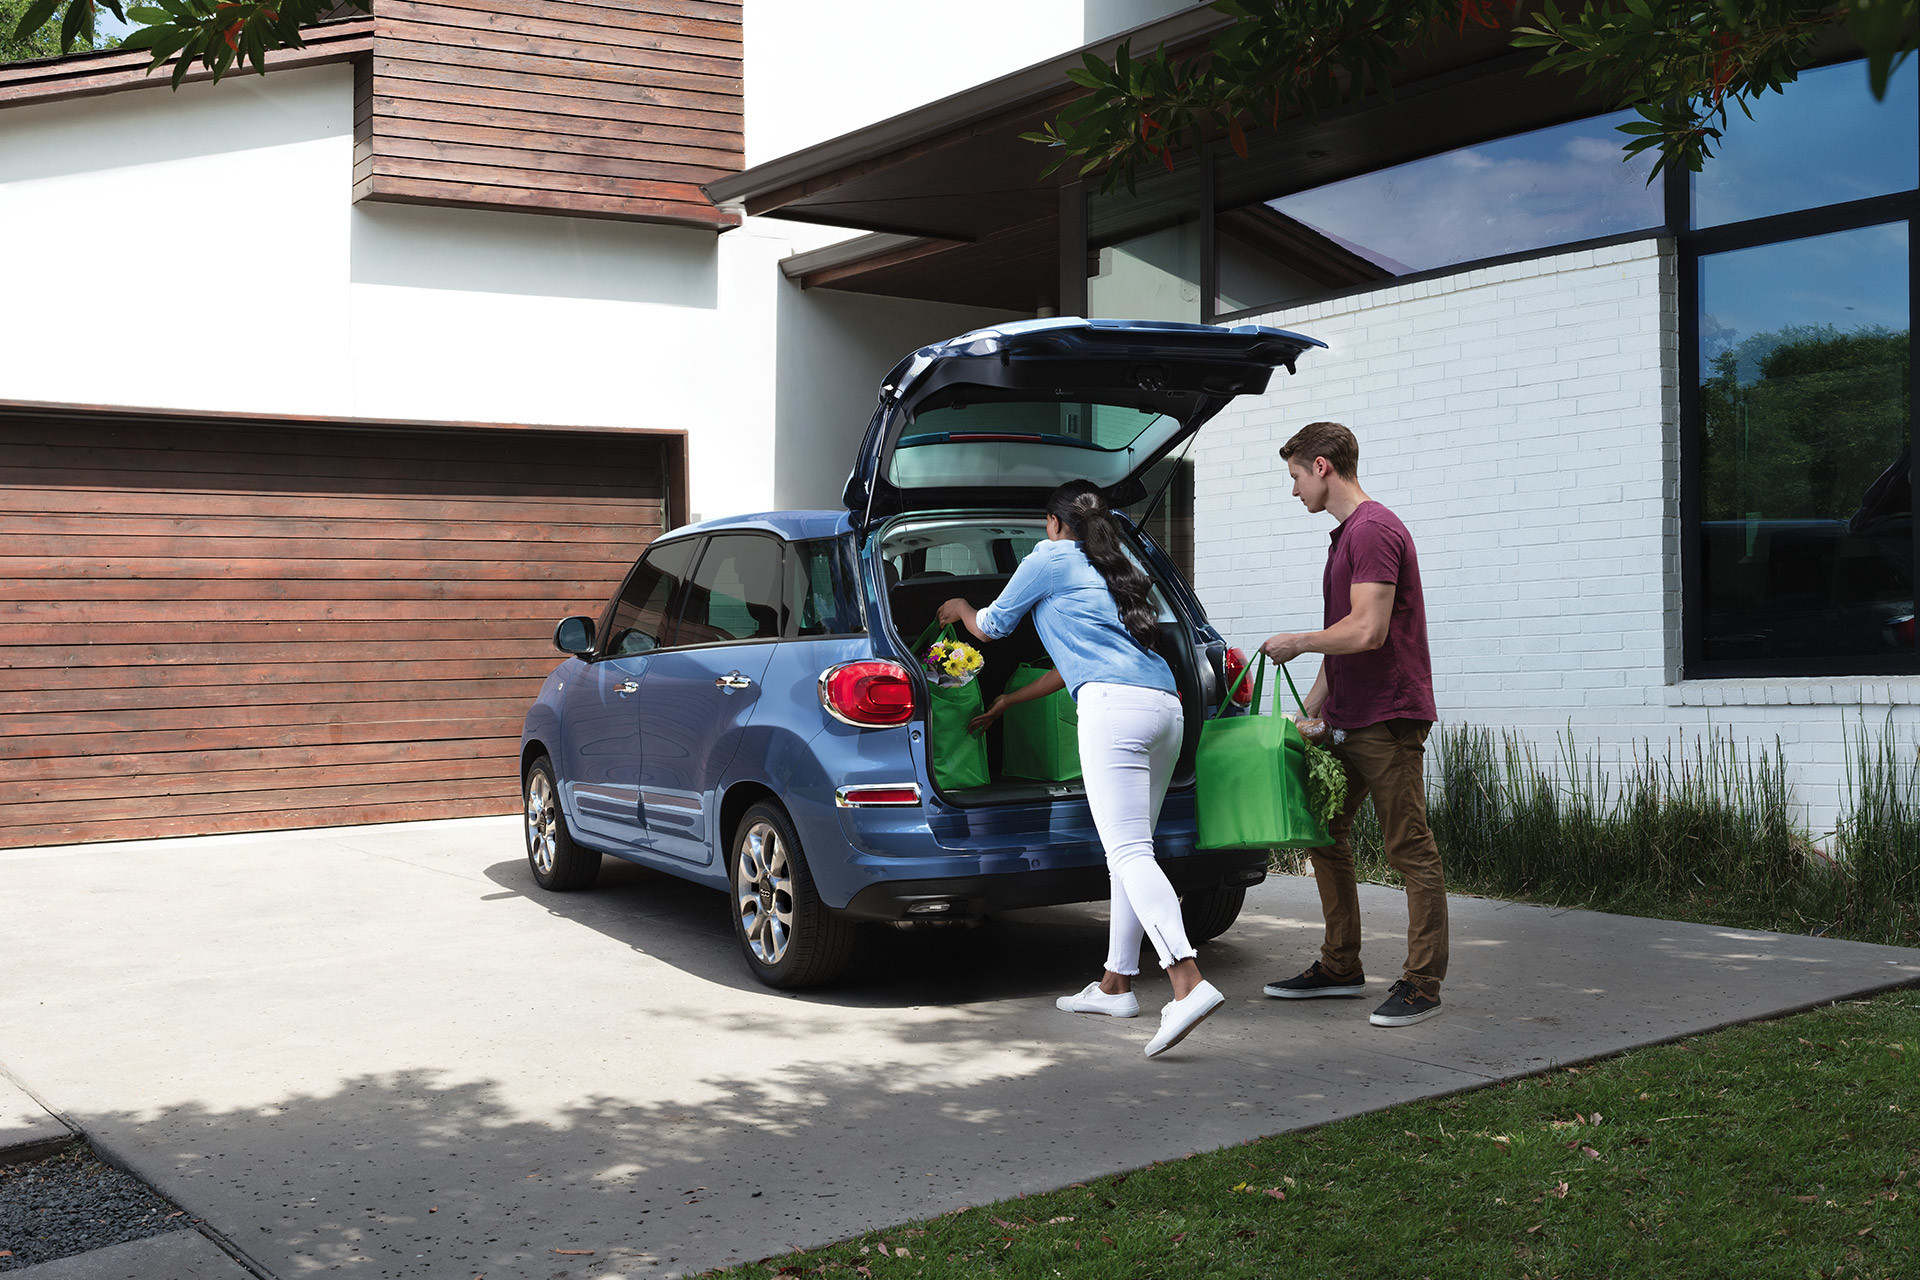 2019 Fiat 500L exterior shot of two people unloading the trunk, shown in blue